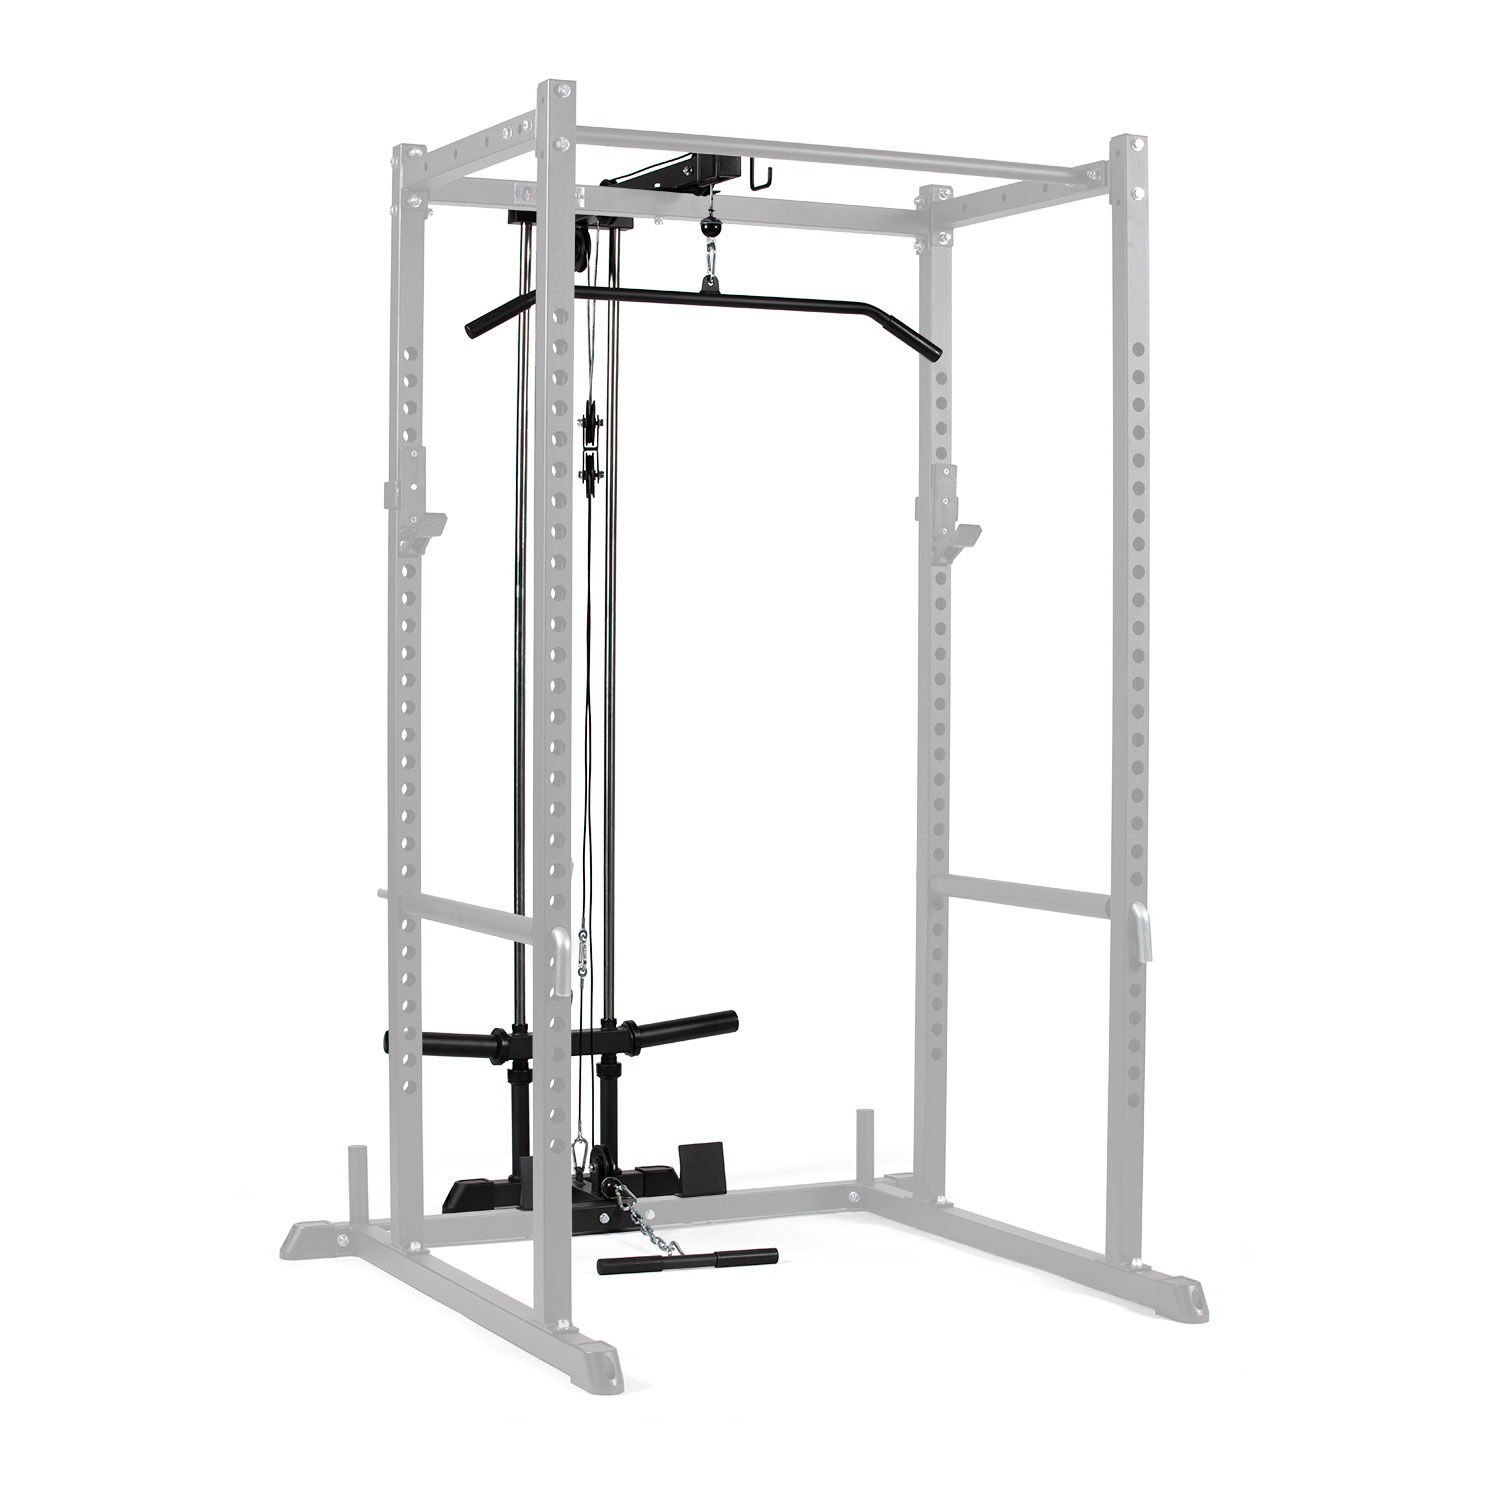 t 2 series lat tower power rack attachment